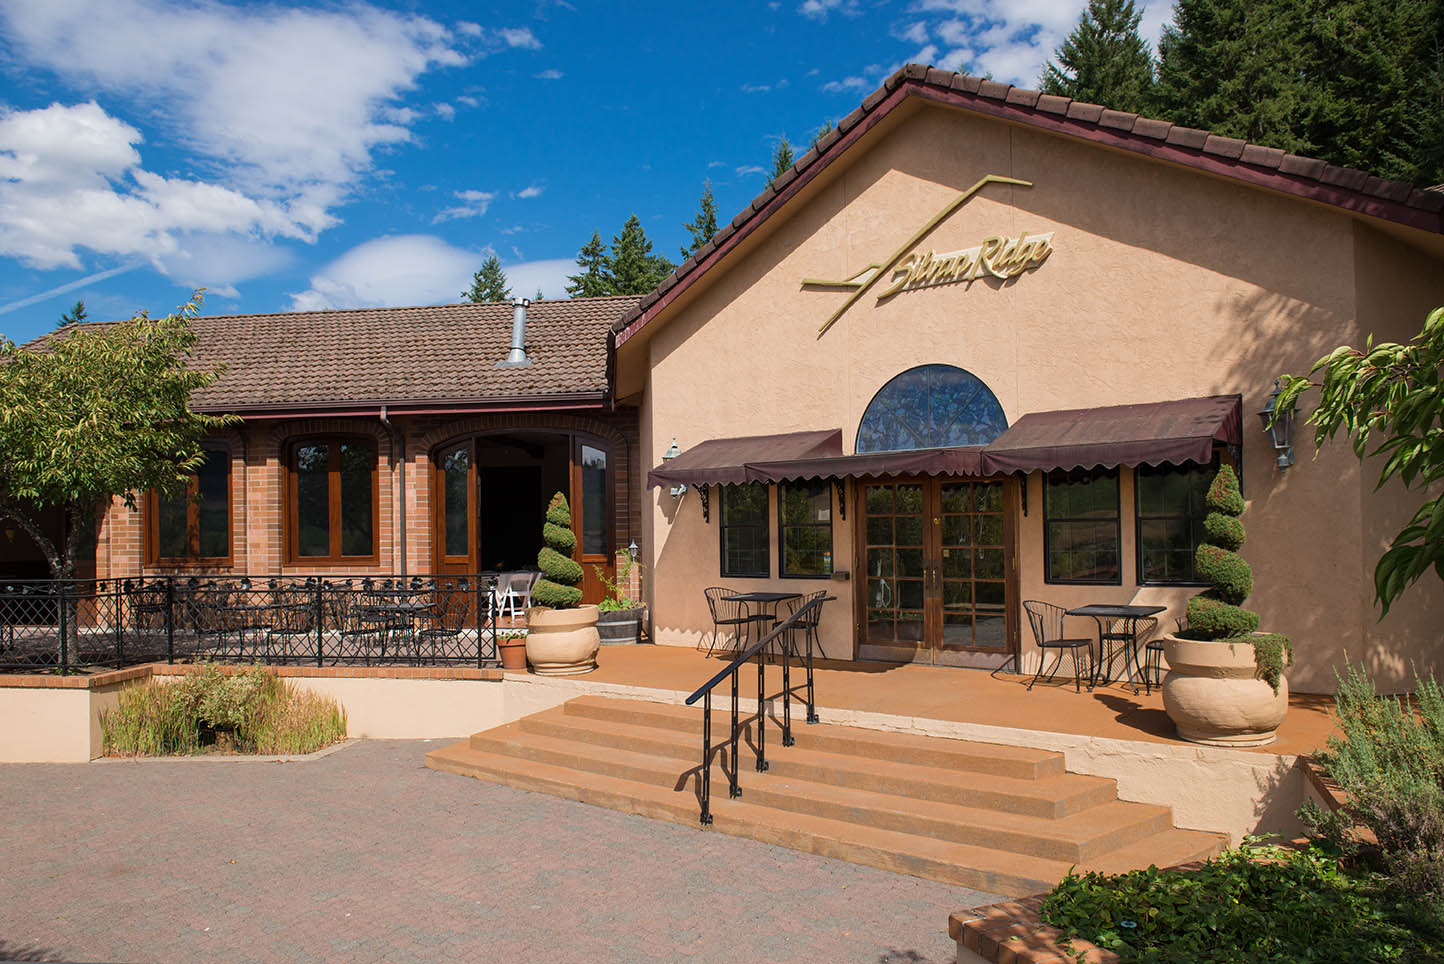 New Winery Front